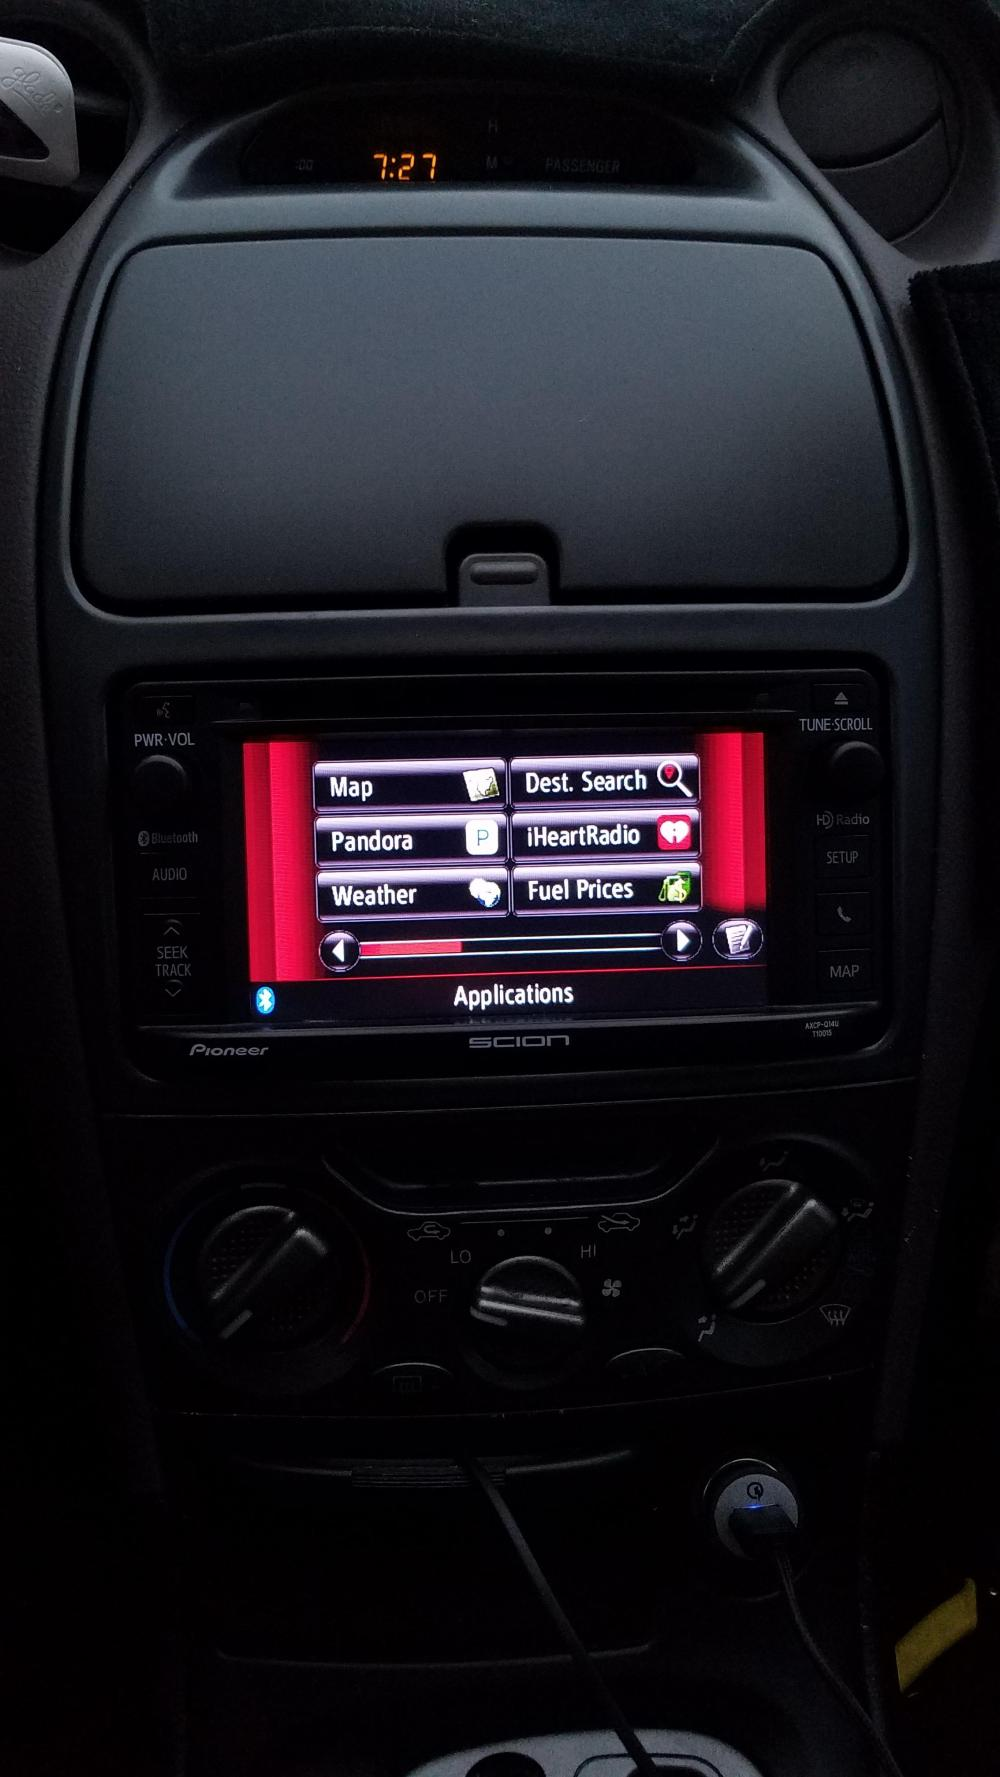 medium resolution of for anyone who wants an oem stereo upgrade